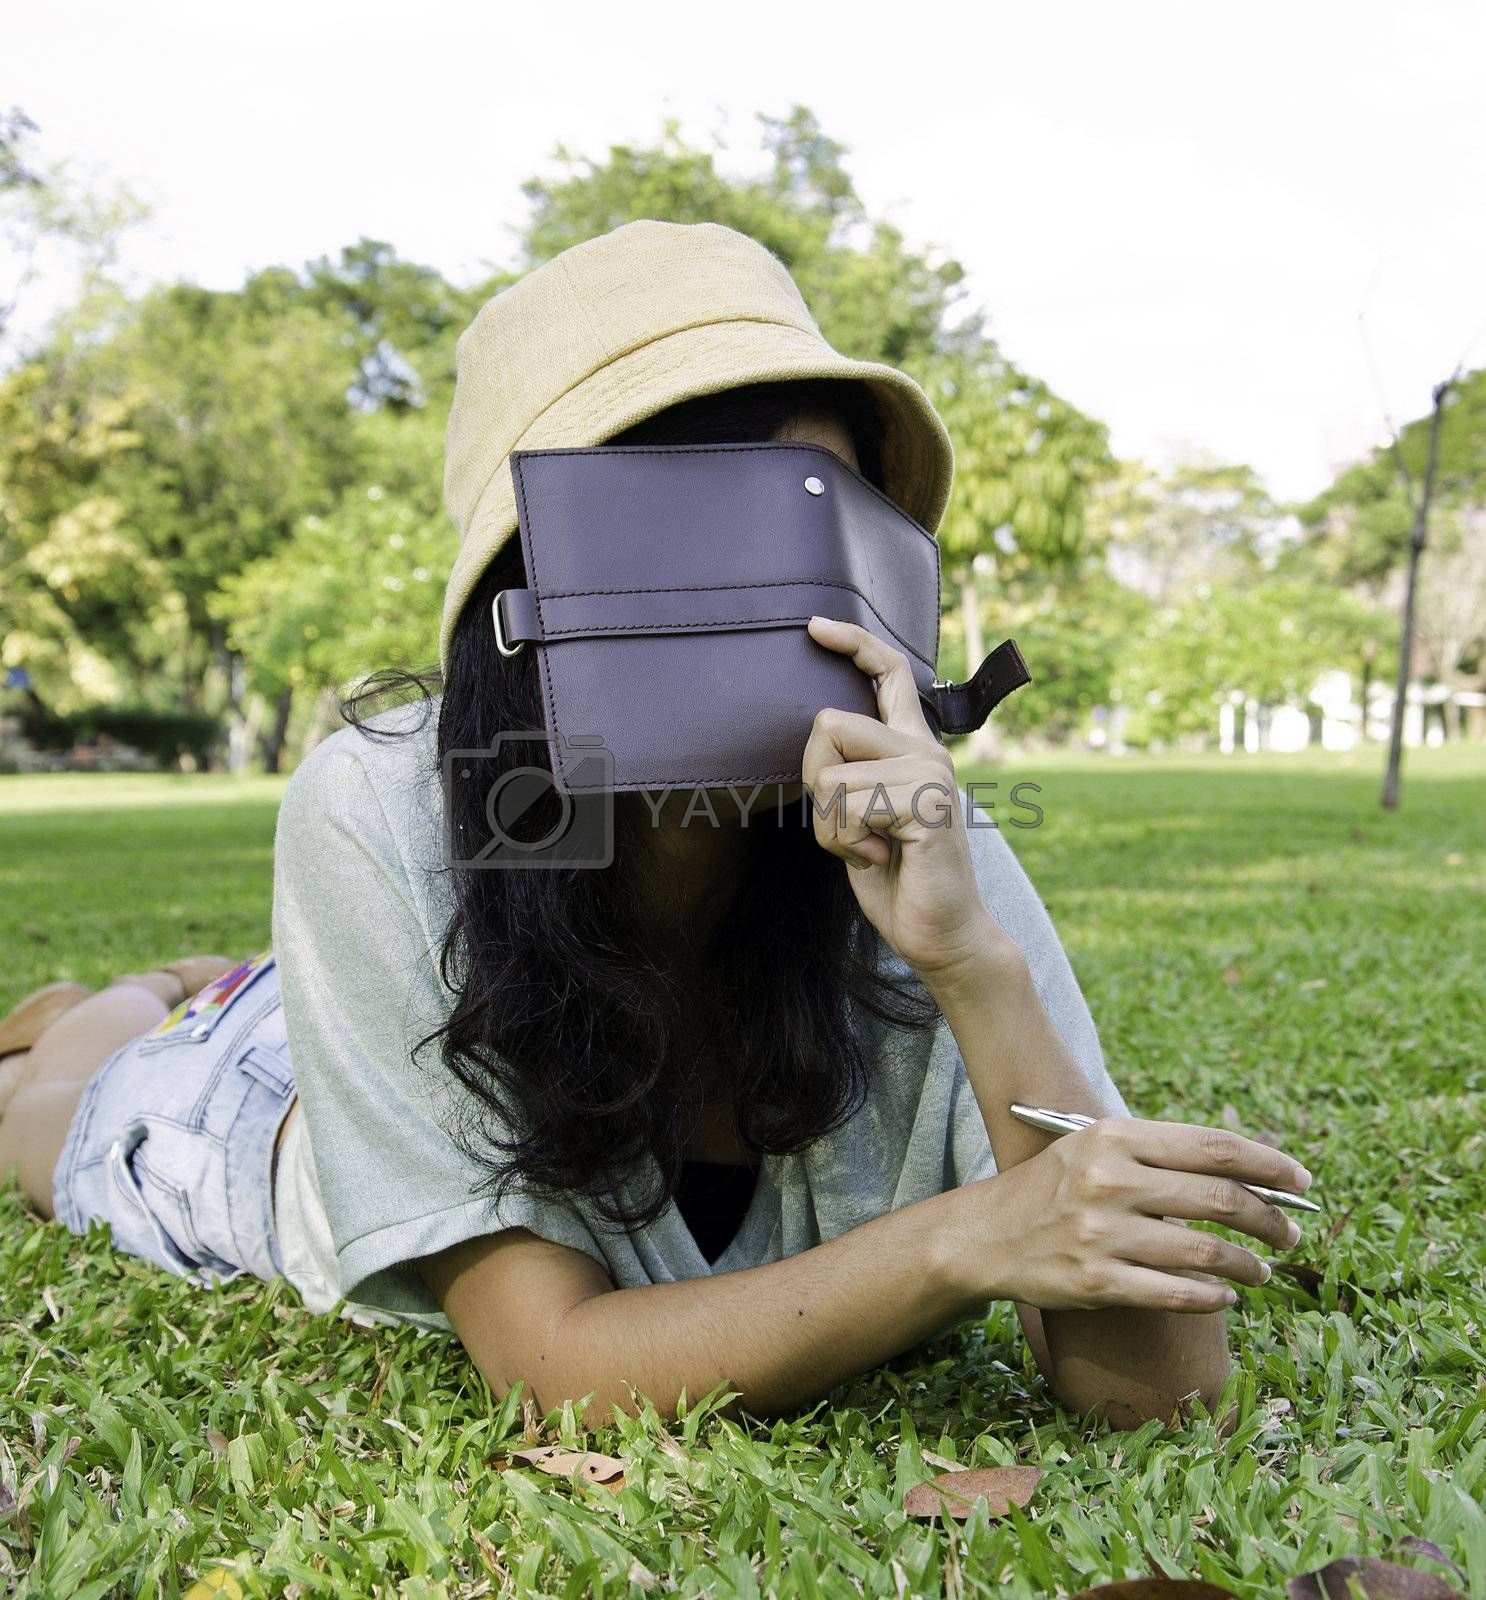 woman laying on grass and thinking in park, outdoor